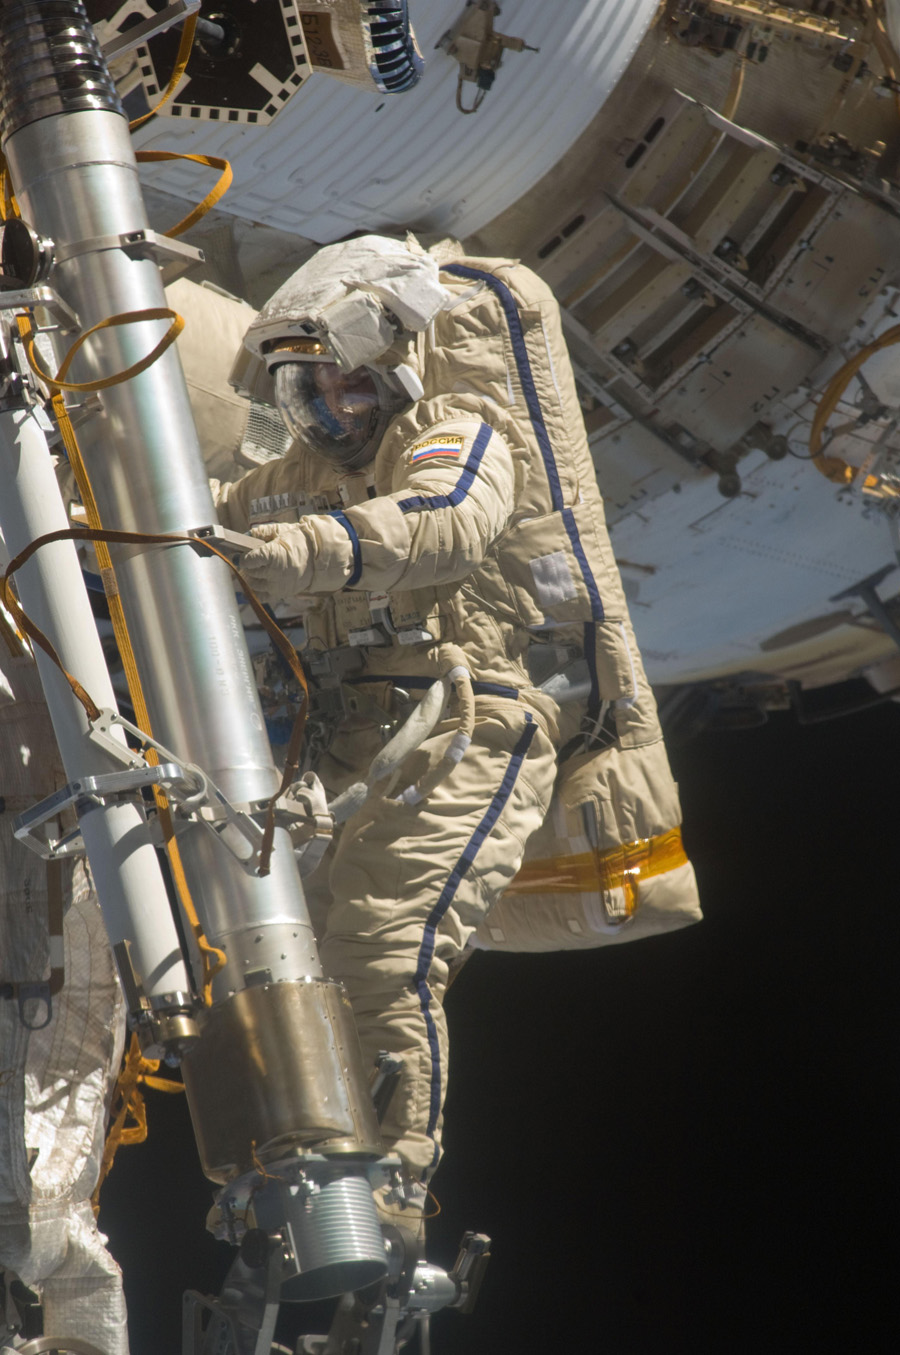 Astronaut in space suit holds a metal cylinder outside space station, seen in background